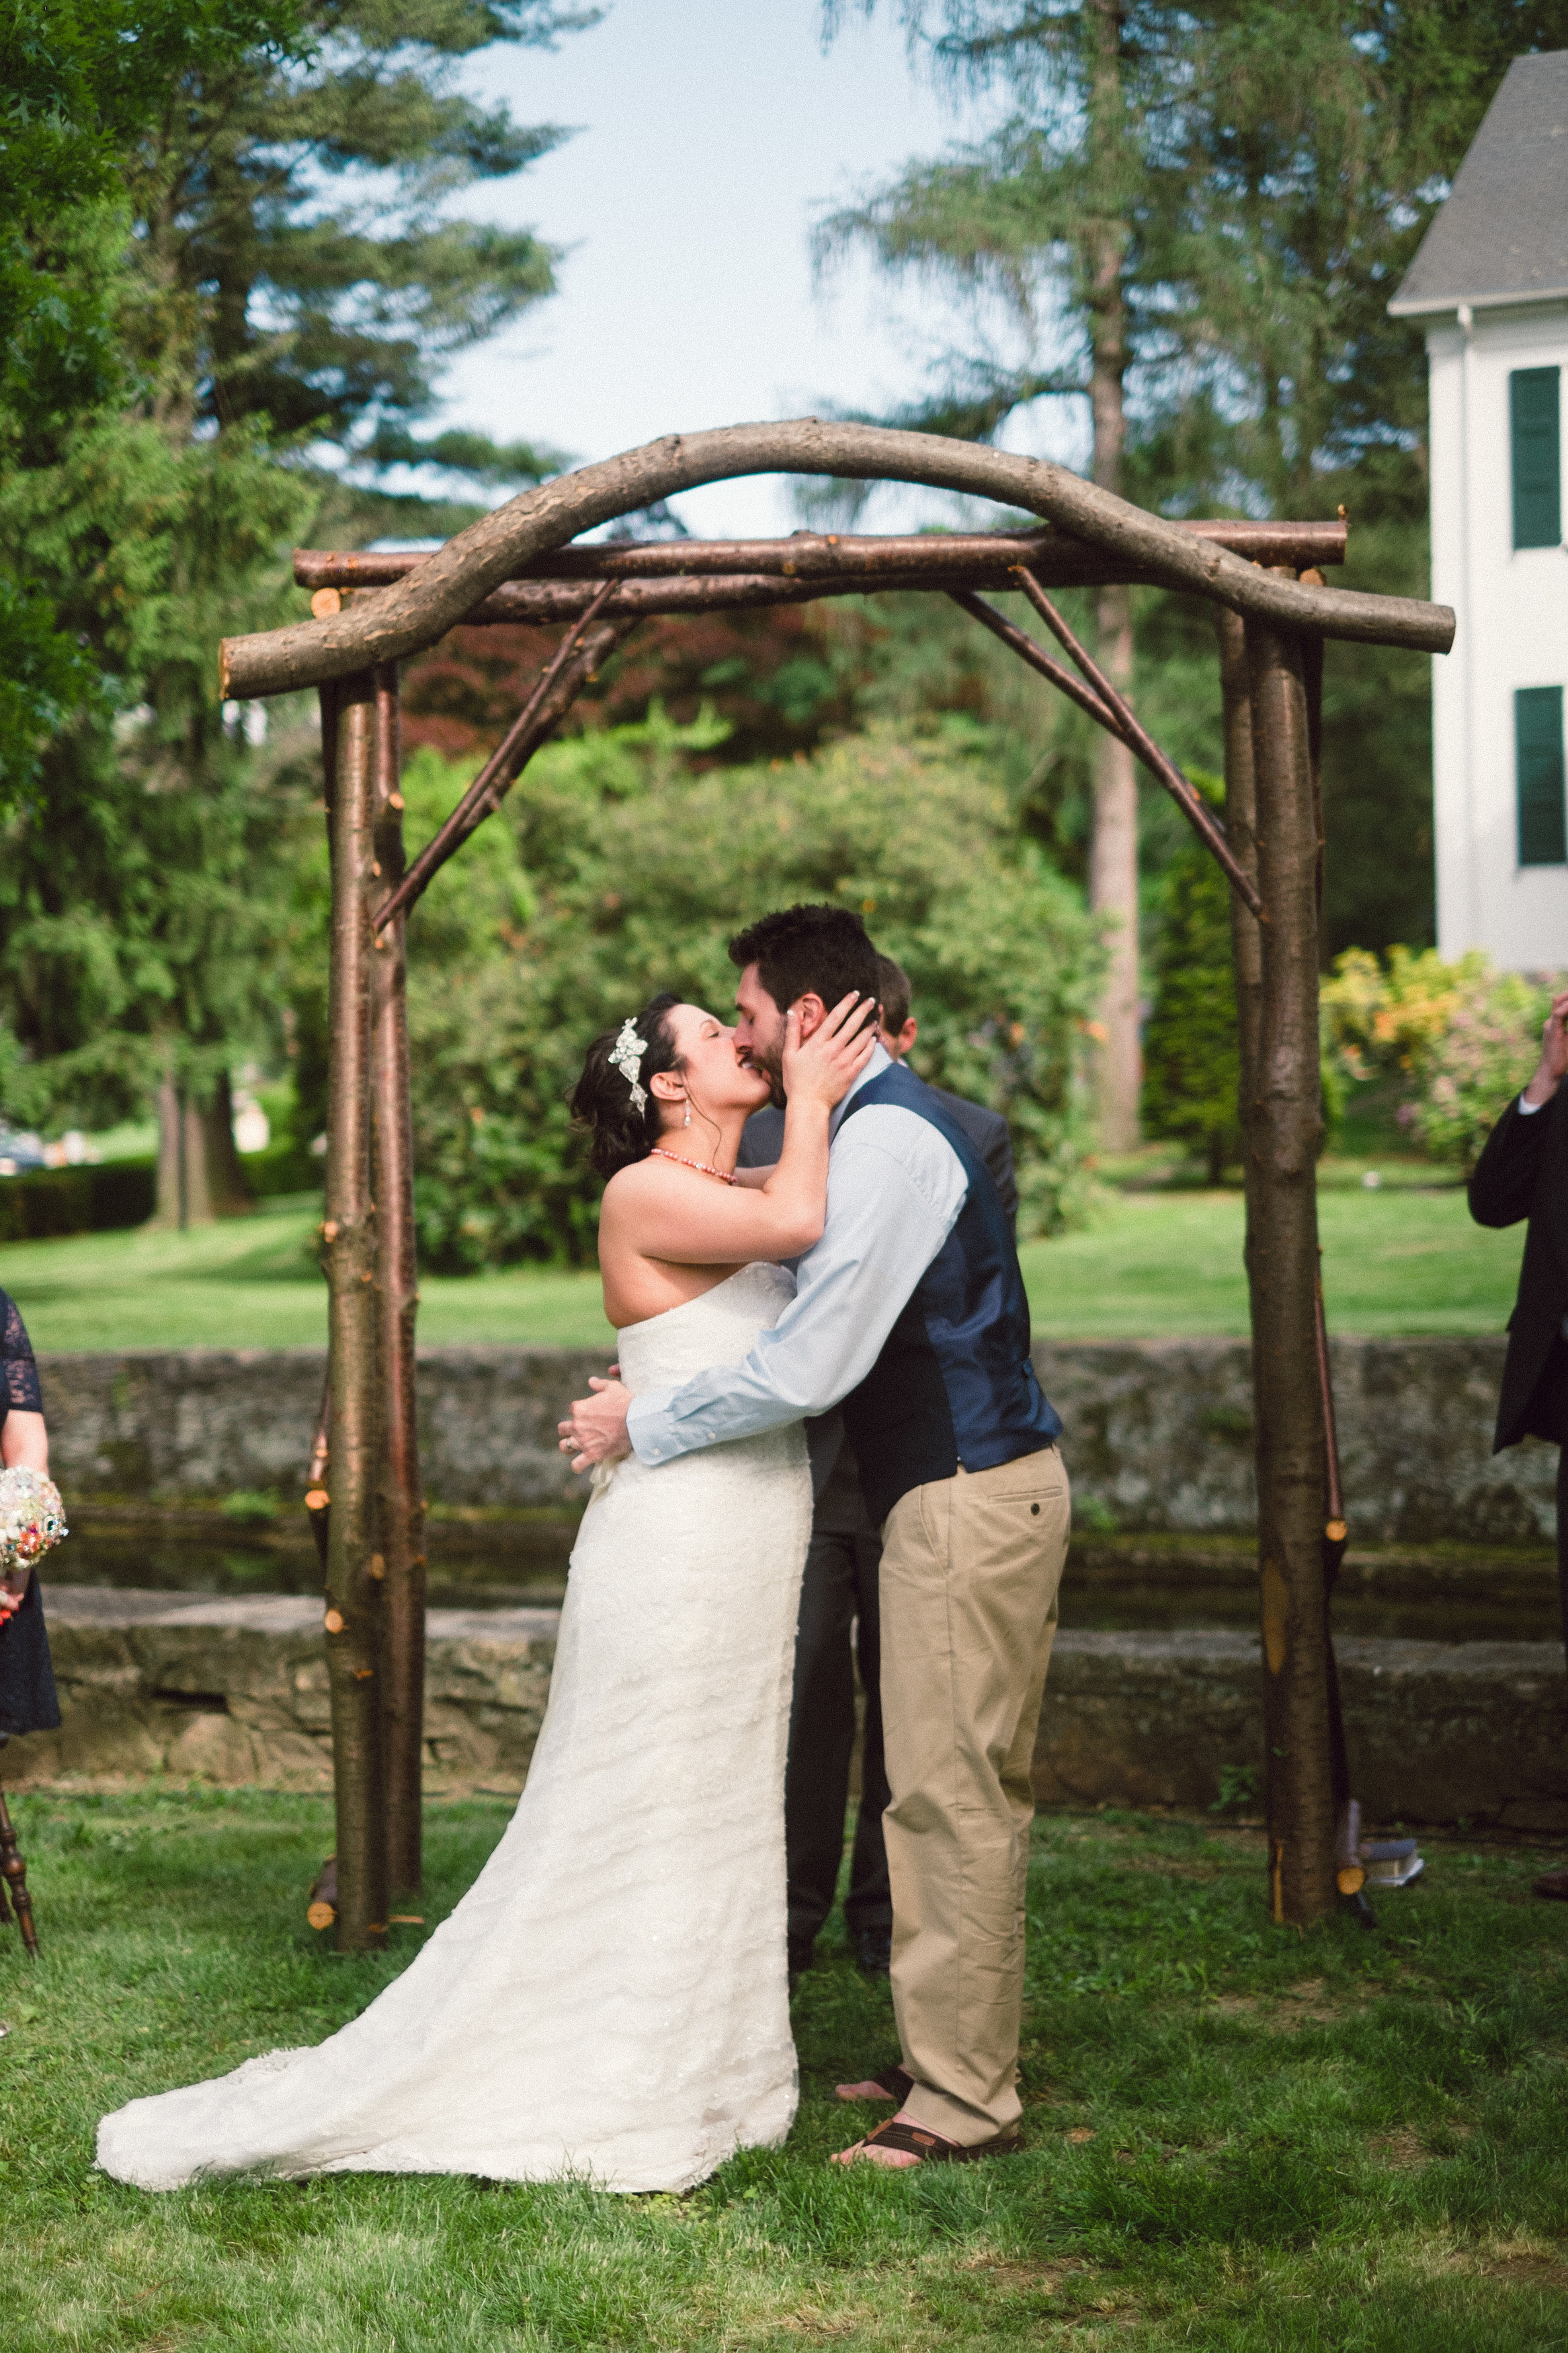 PennsylvaniaWeddingPhotographer-334.jpg